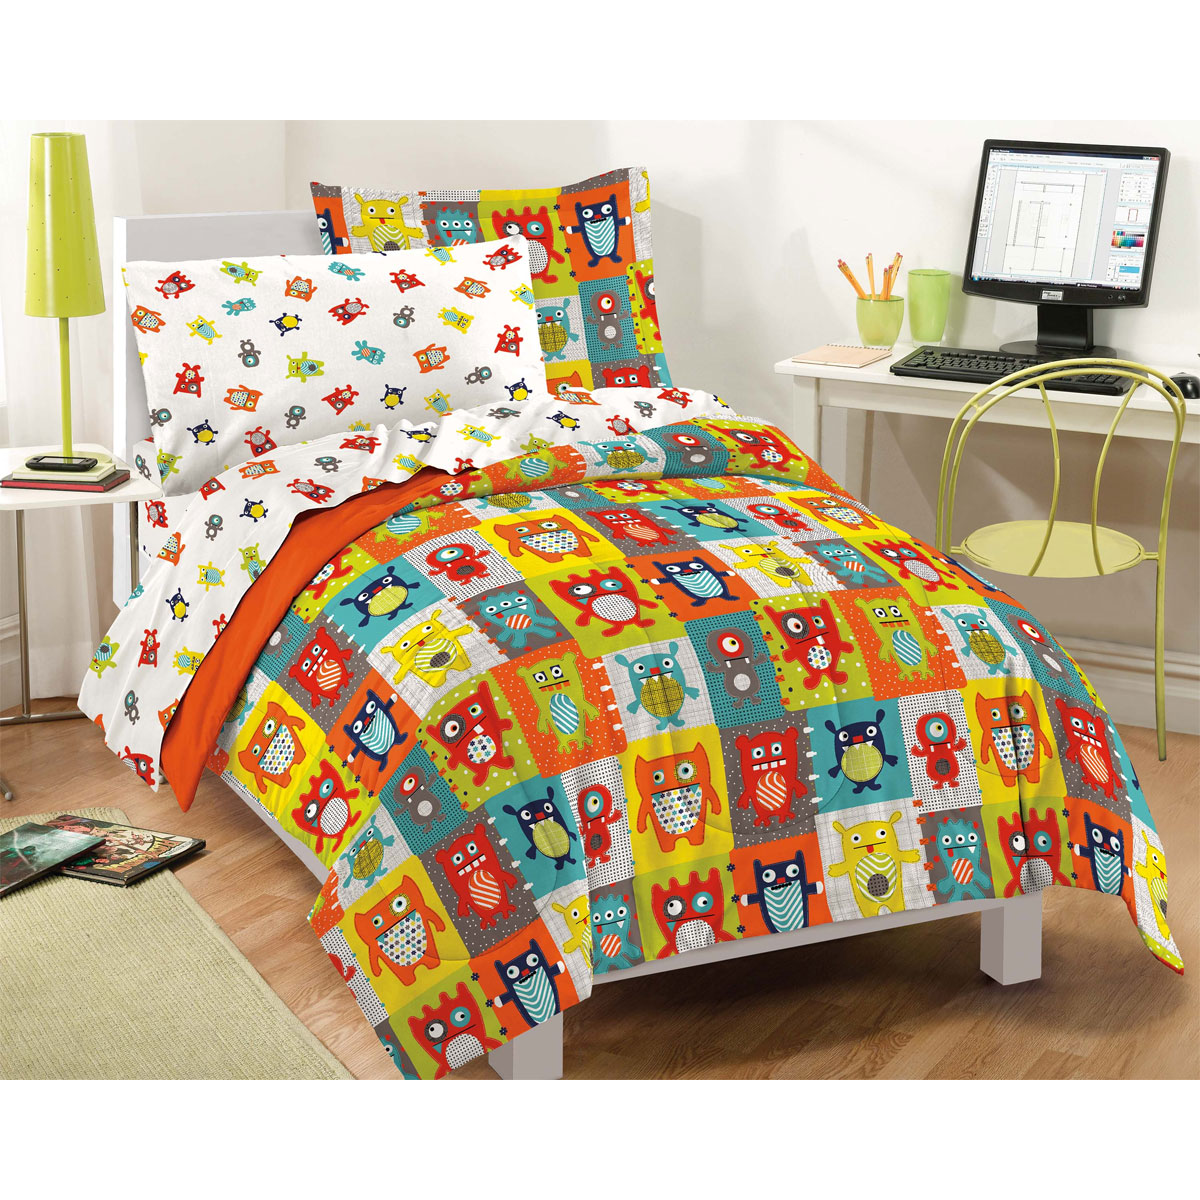 dream factory silly monsters mini bed in a bag bedding set  - dream factory silly monsters mini bed in a bag bedding set  walmartcom